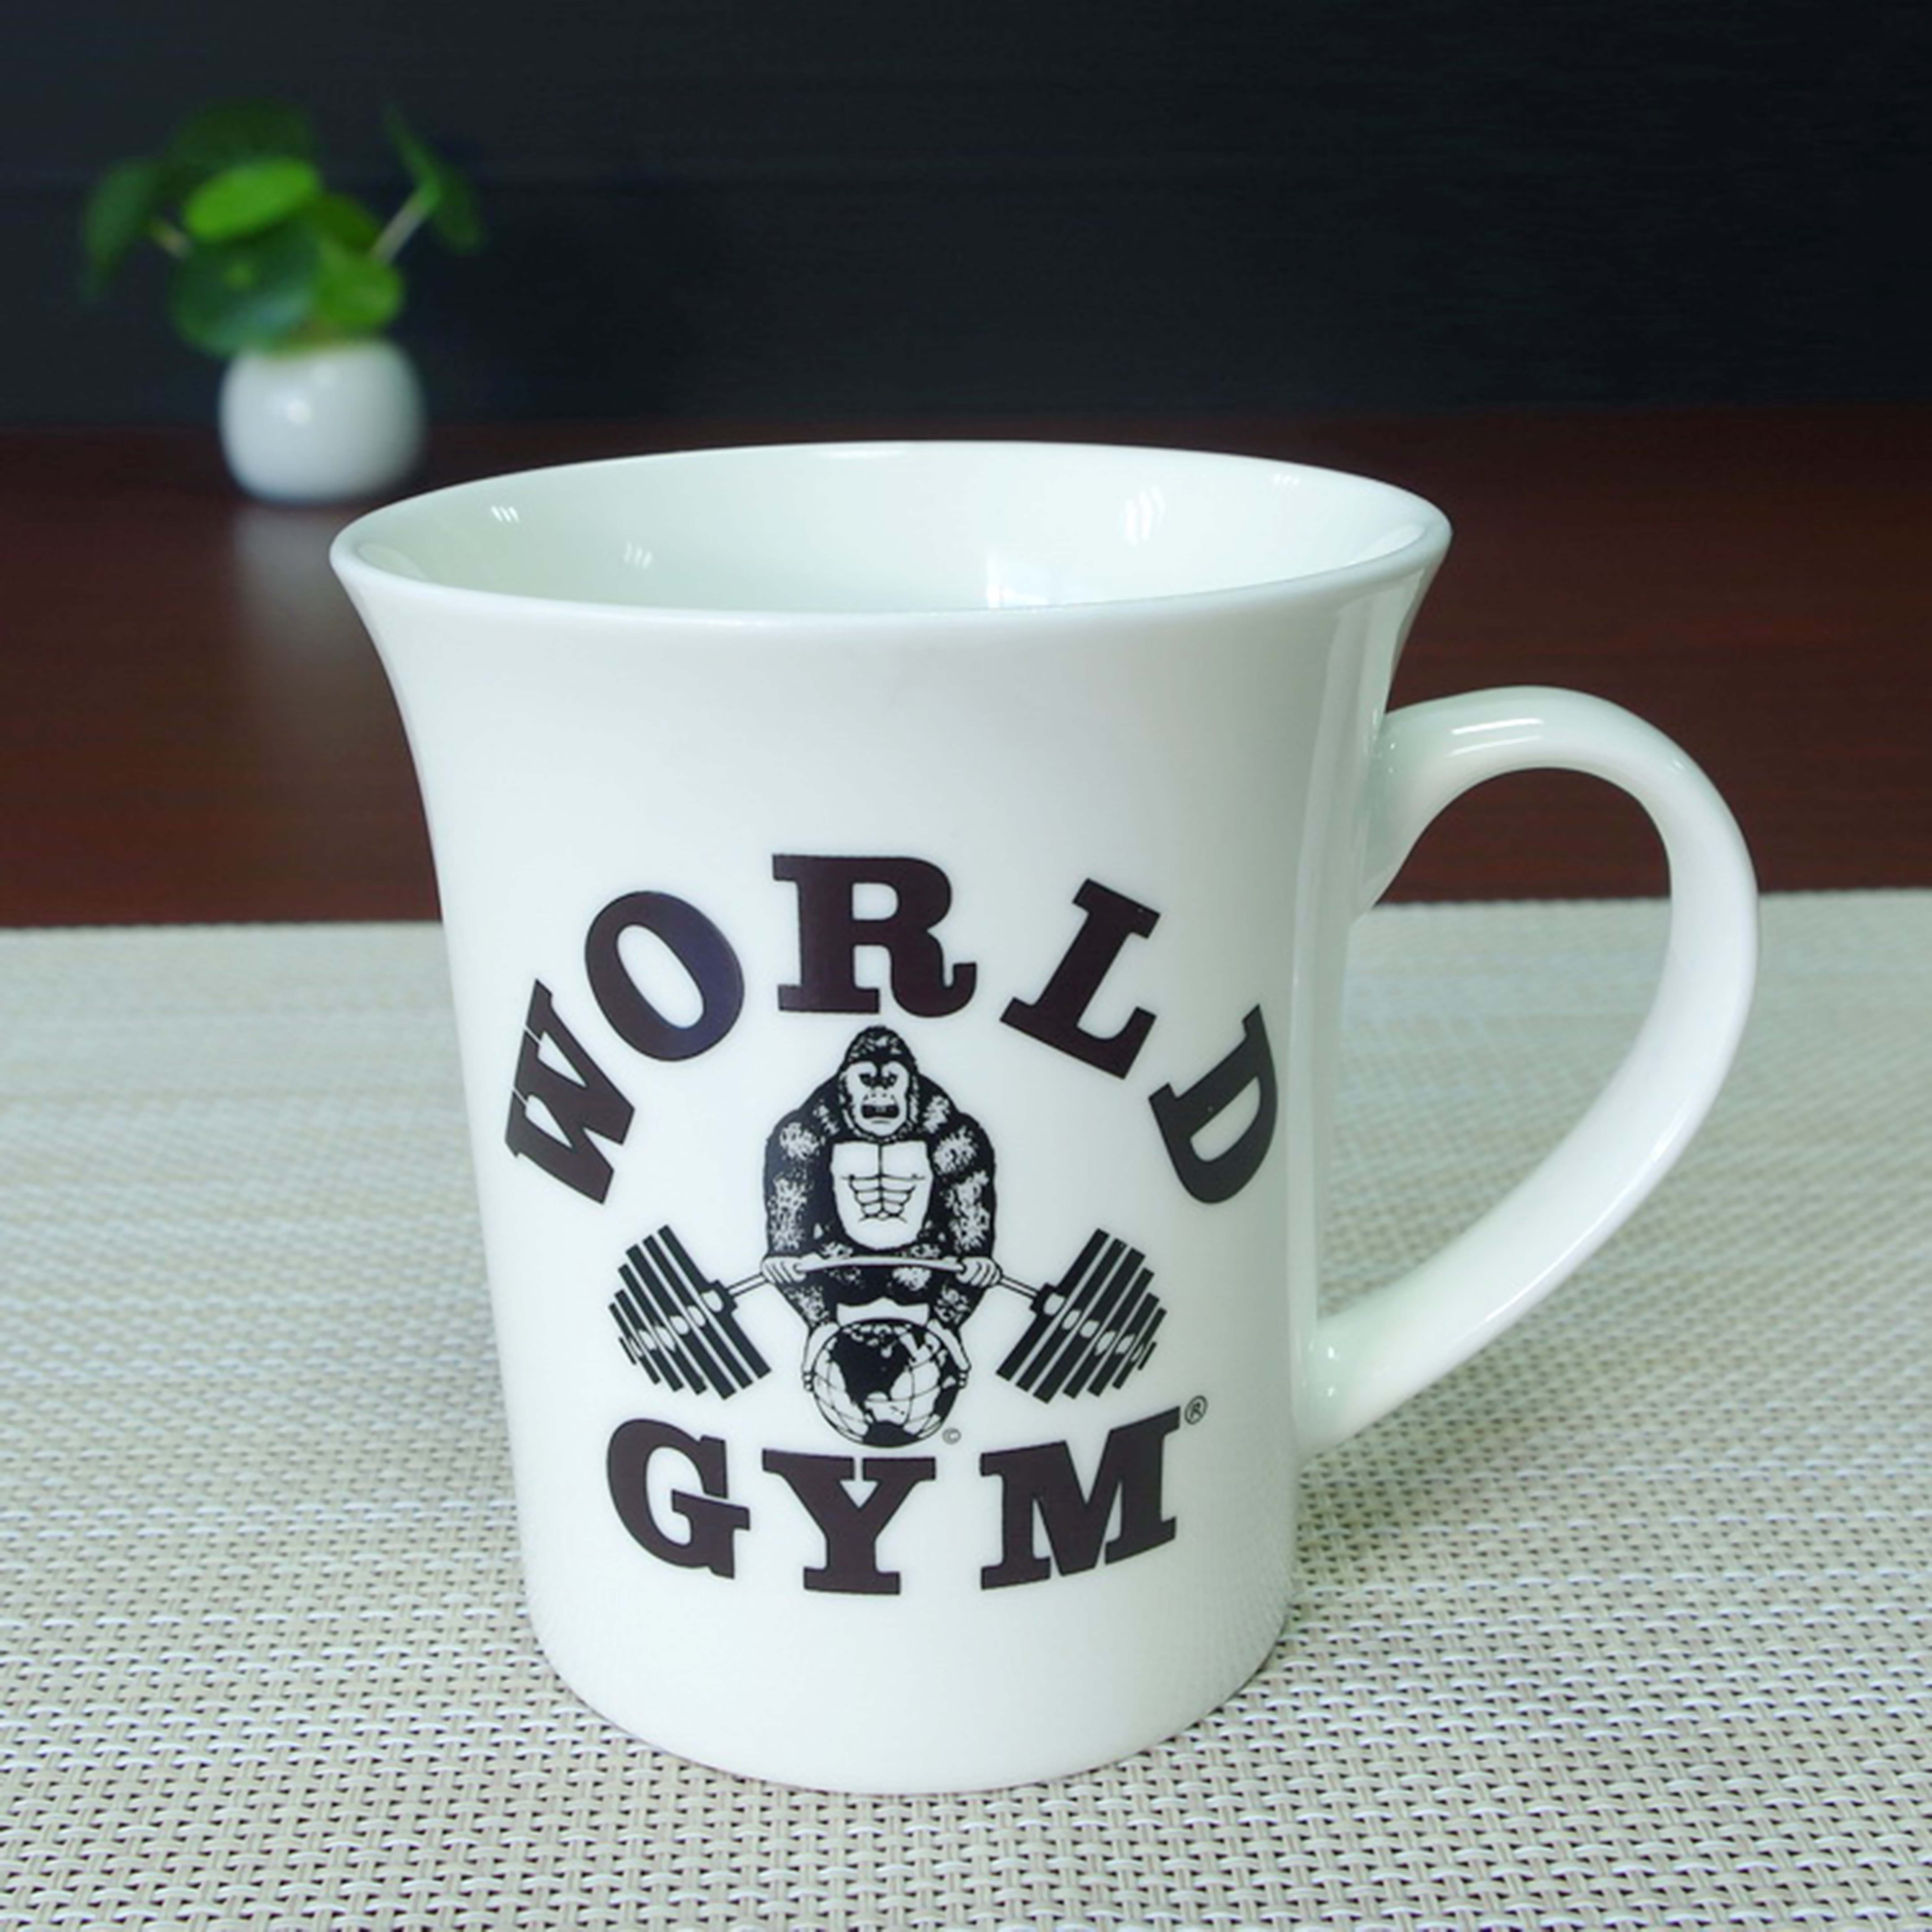 11oz The horn cup  magic mugs free style photo design color changing mug magic sublimation mug